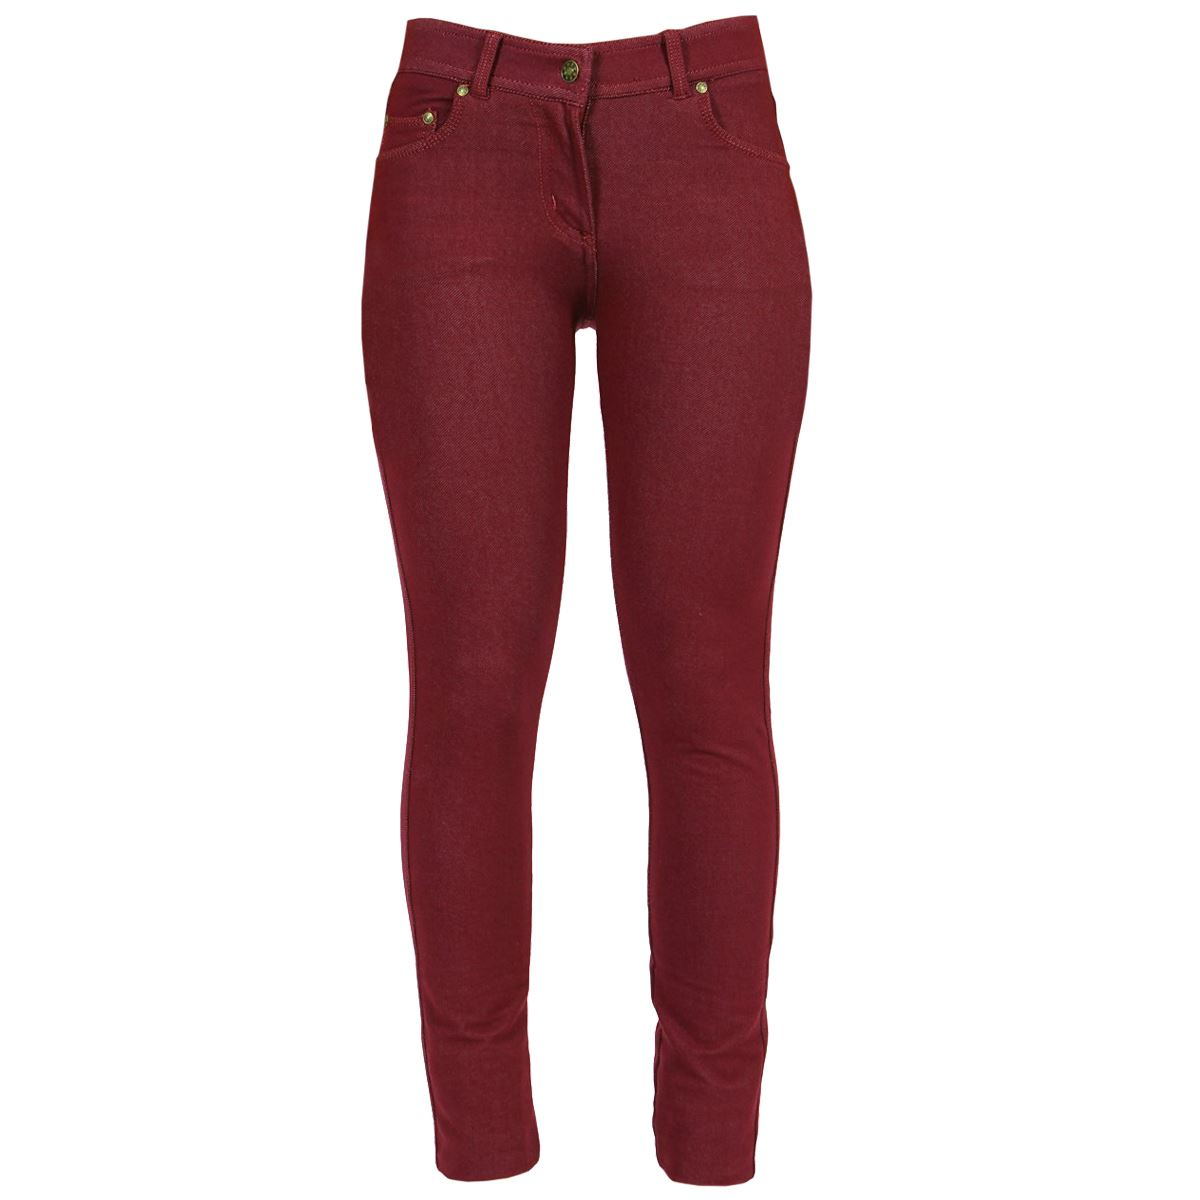 Buy New Womens 14 Jeans at Macy's. Shop Online for the Latest Designer 14 Jeans for Women at 440v.cf FREE SHIPPING AVAILABLE! Macy's Presents: The Edit- A curated mix of fashion and inspiration Check It Out. You have size preferences associated with your profile.